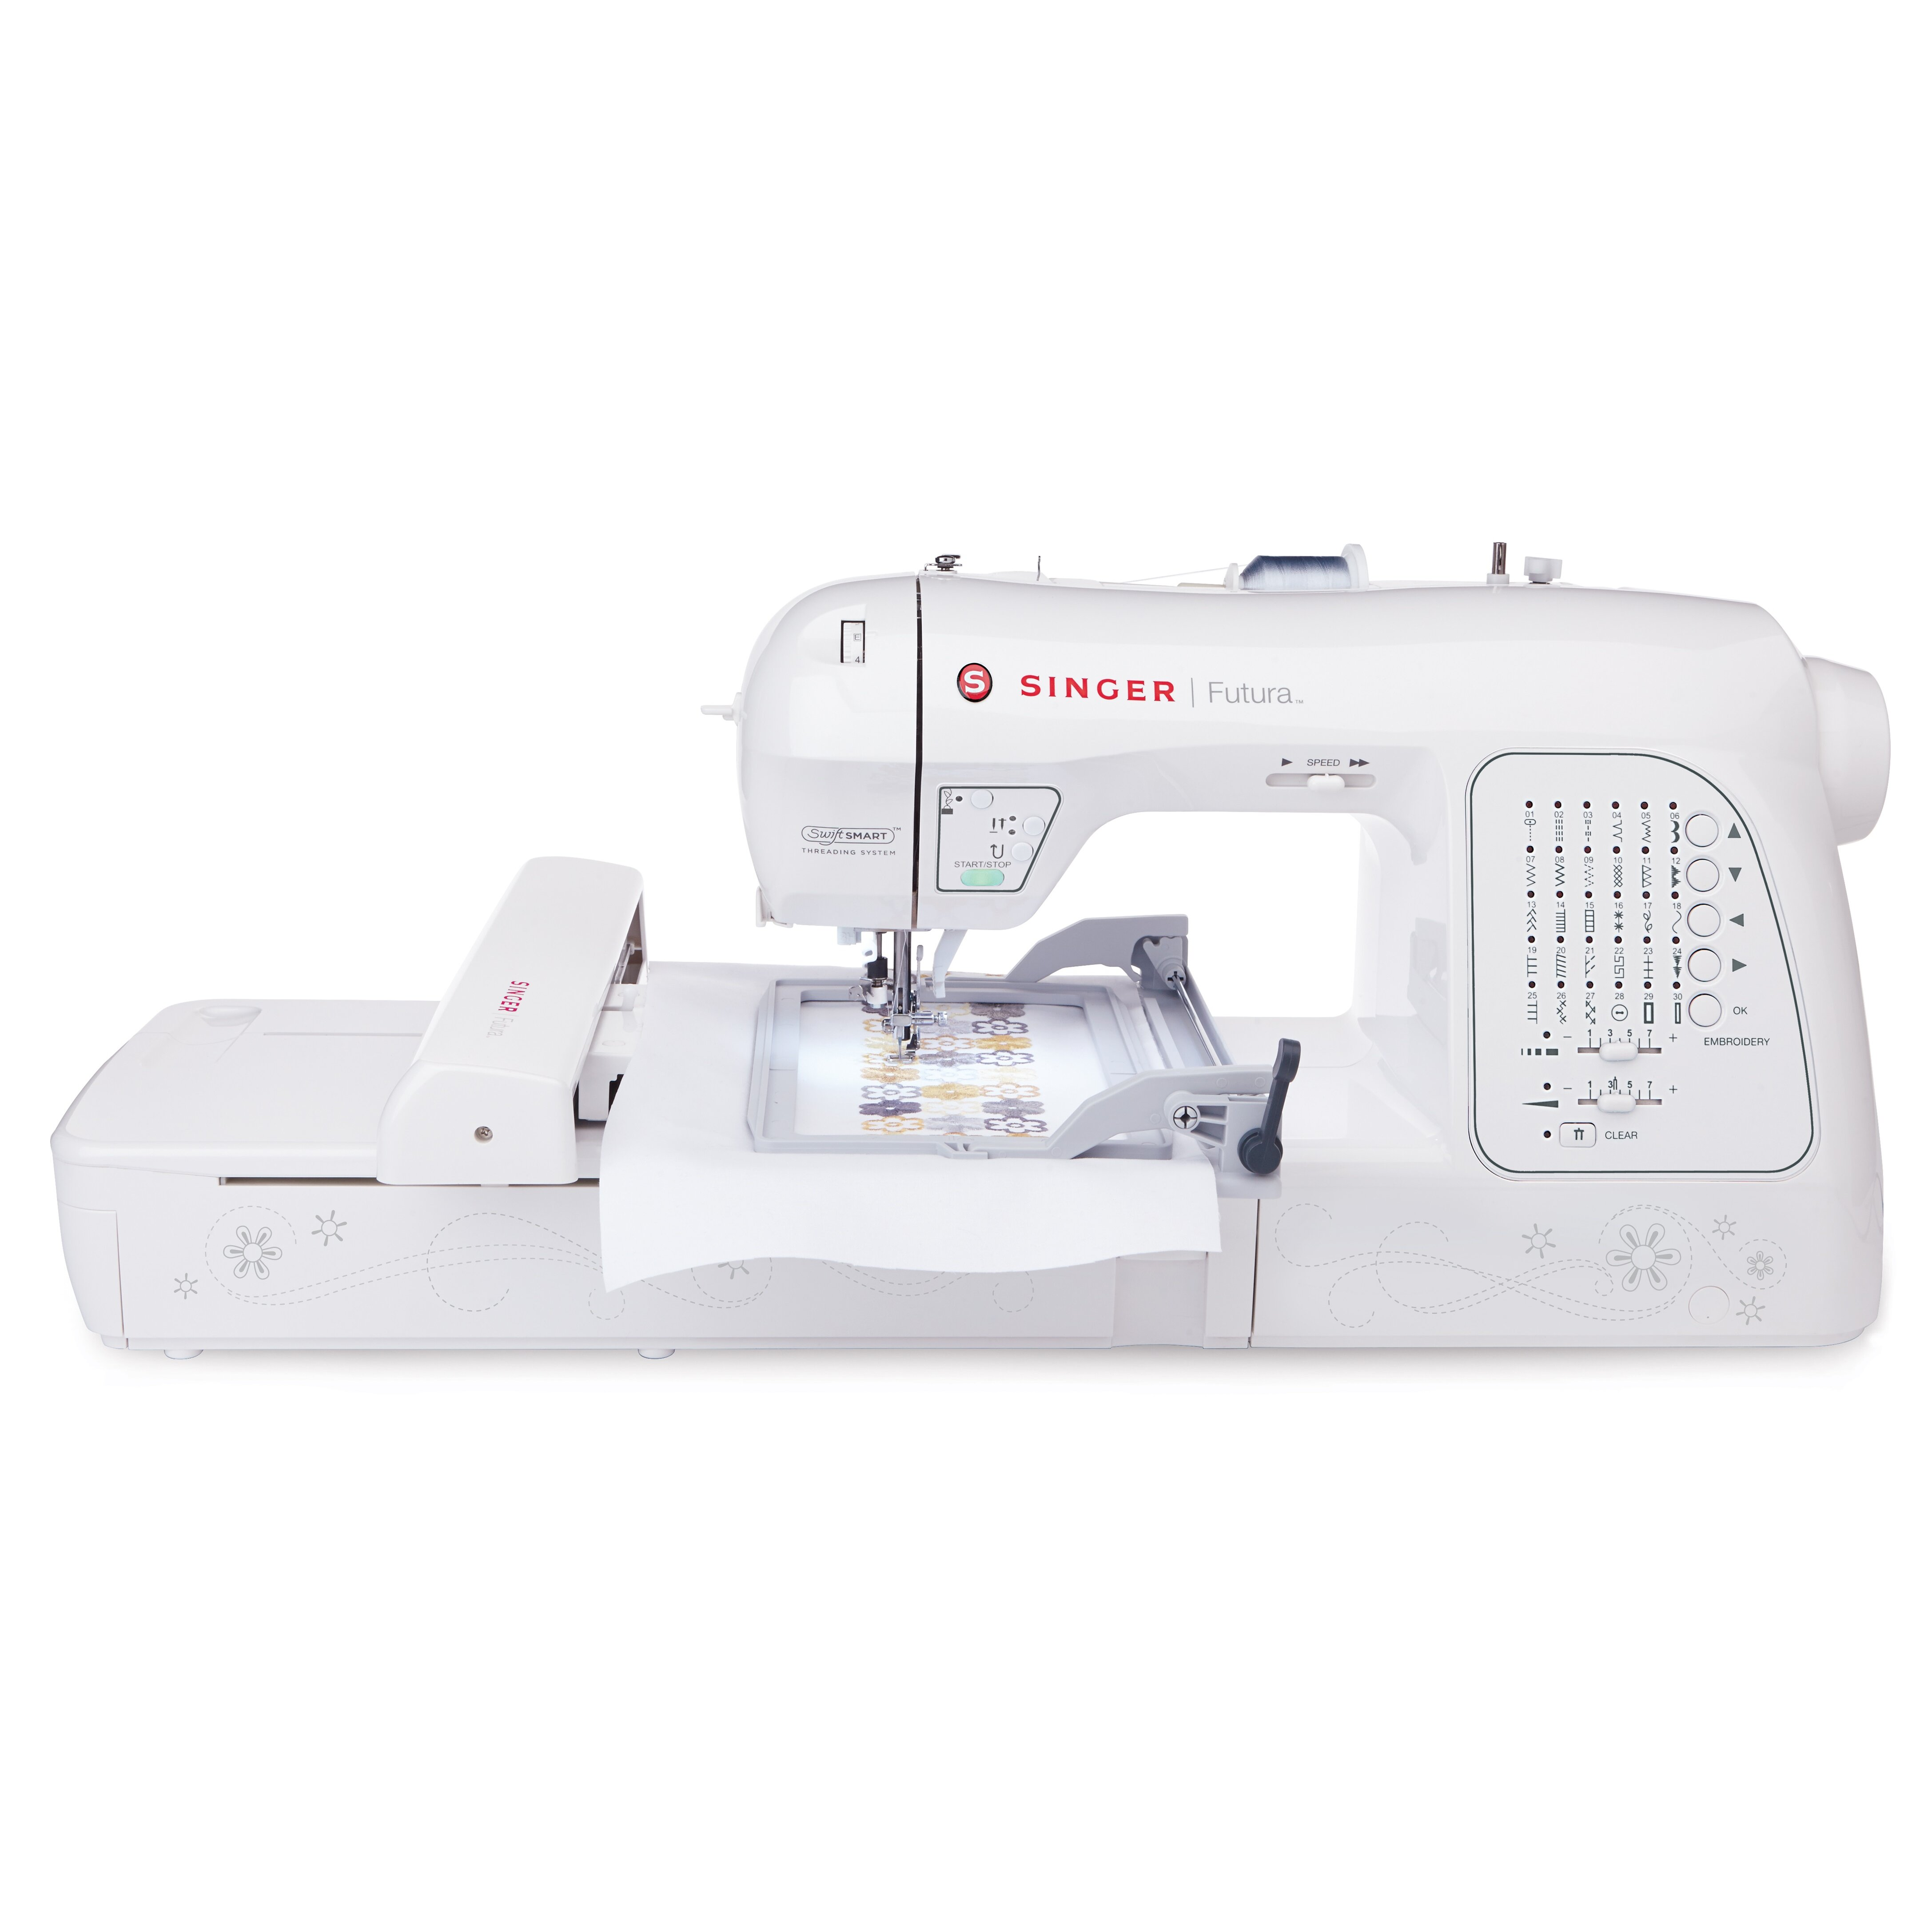 embroidery sewing machine singer